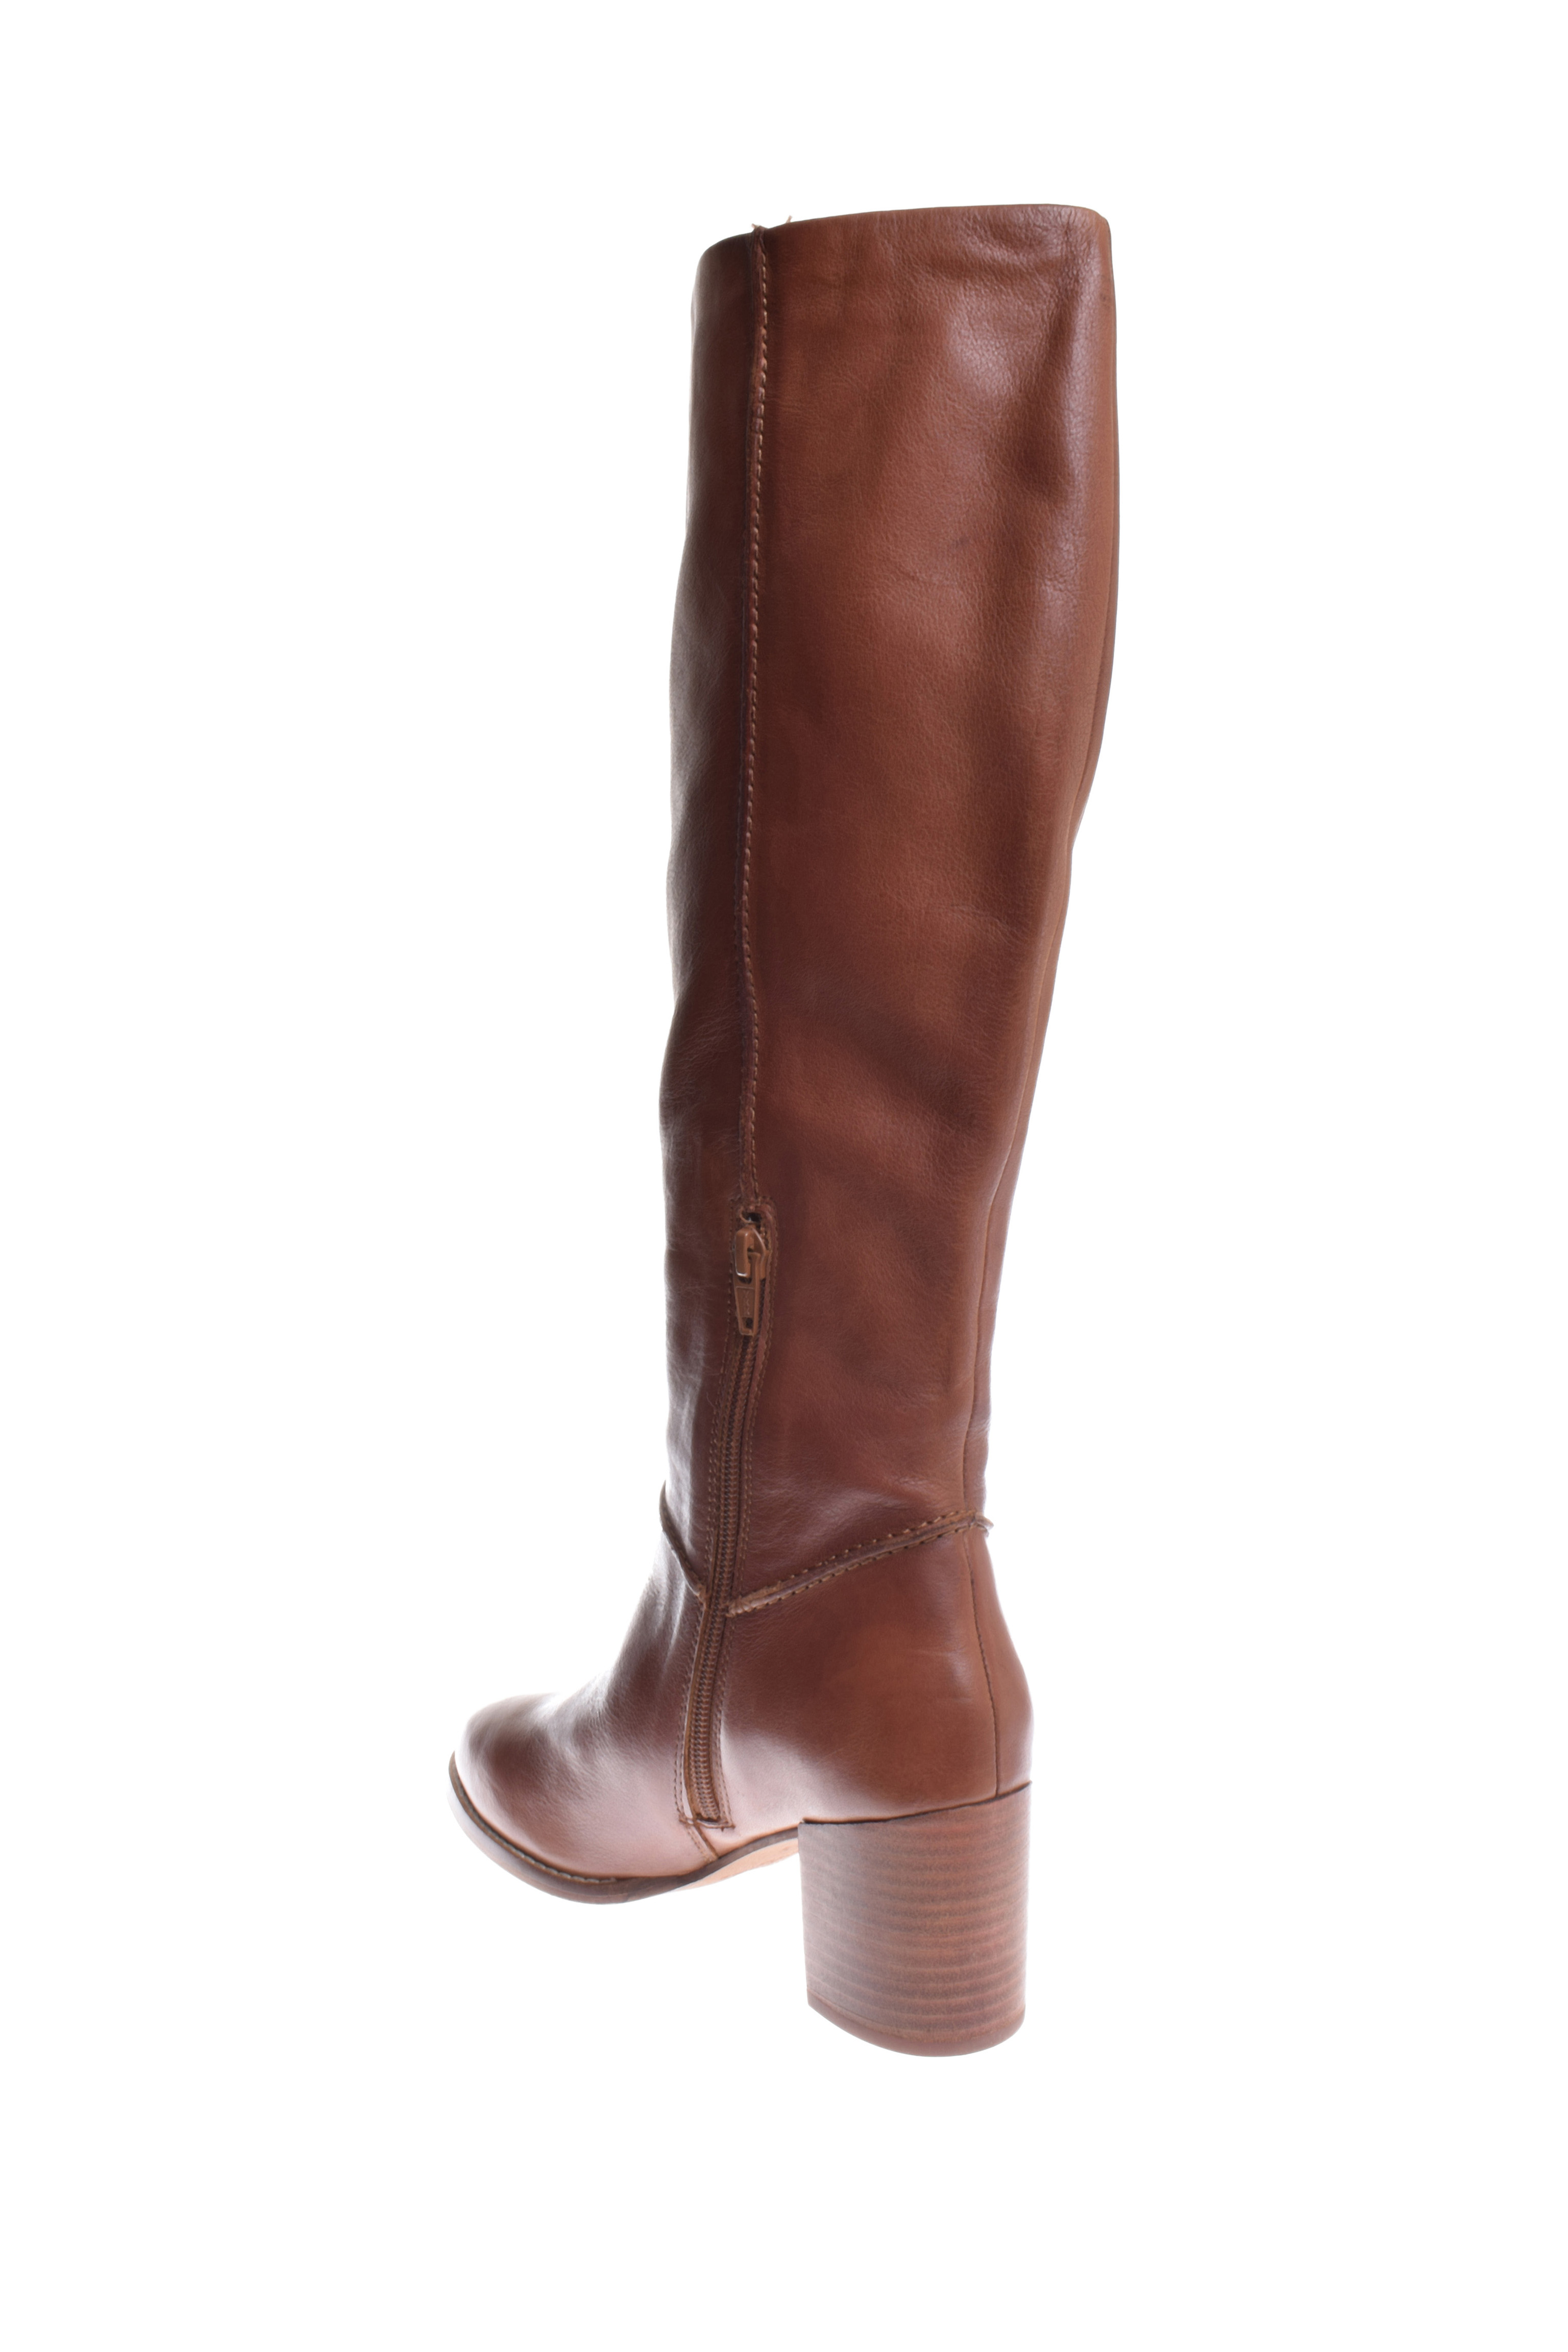 Seychelles Final Bow Knee High Whiskey Leather Boot - Whiskey High 2a6674